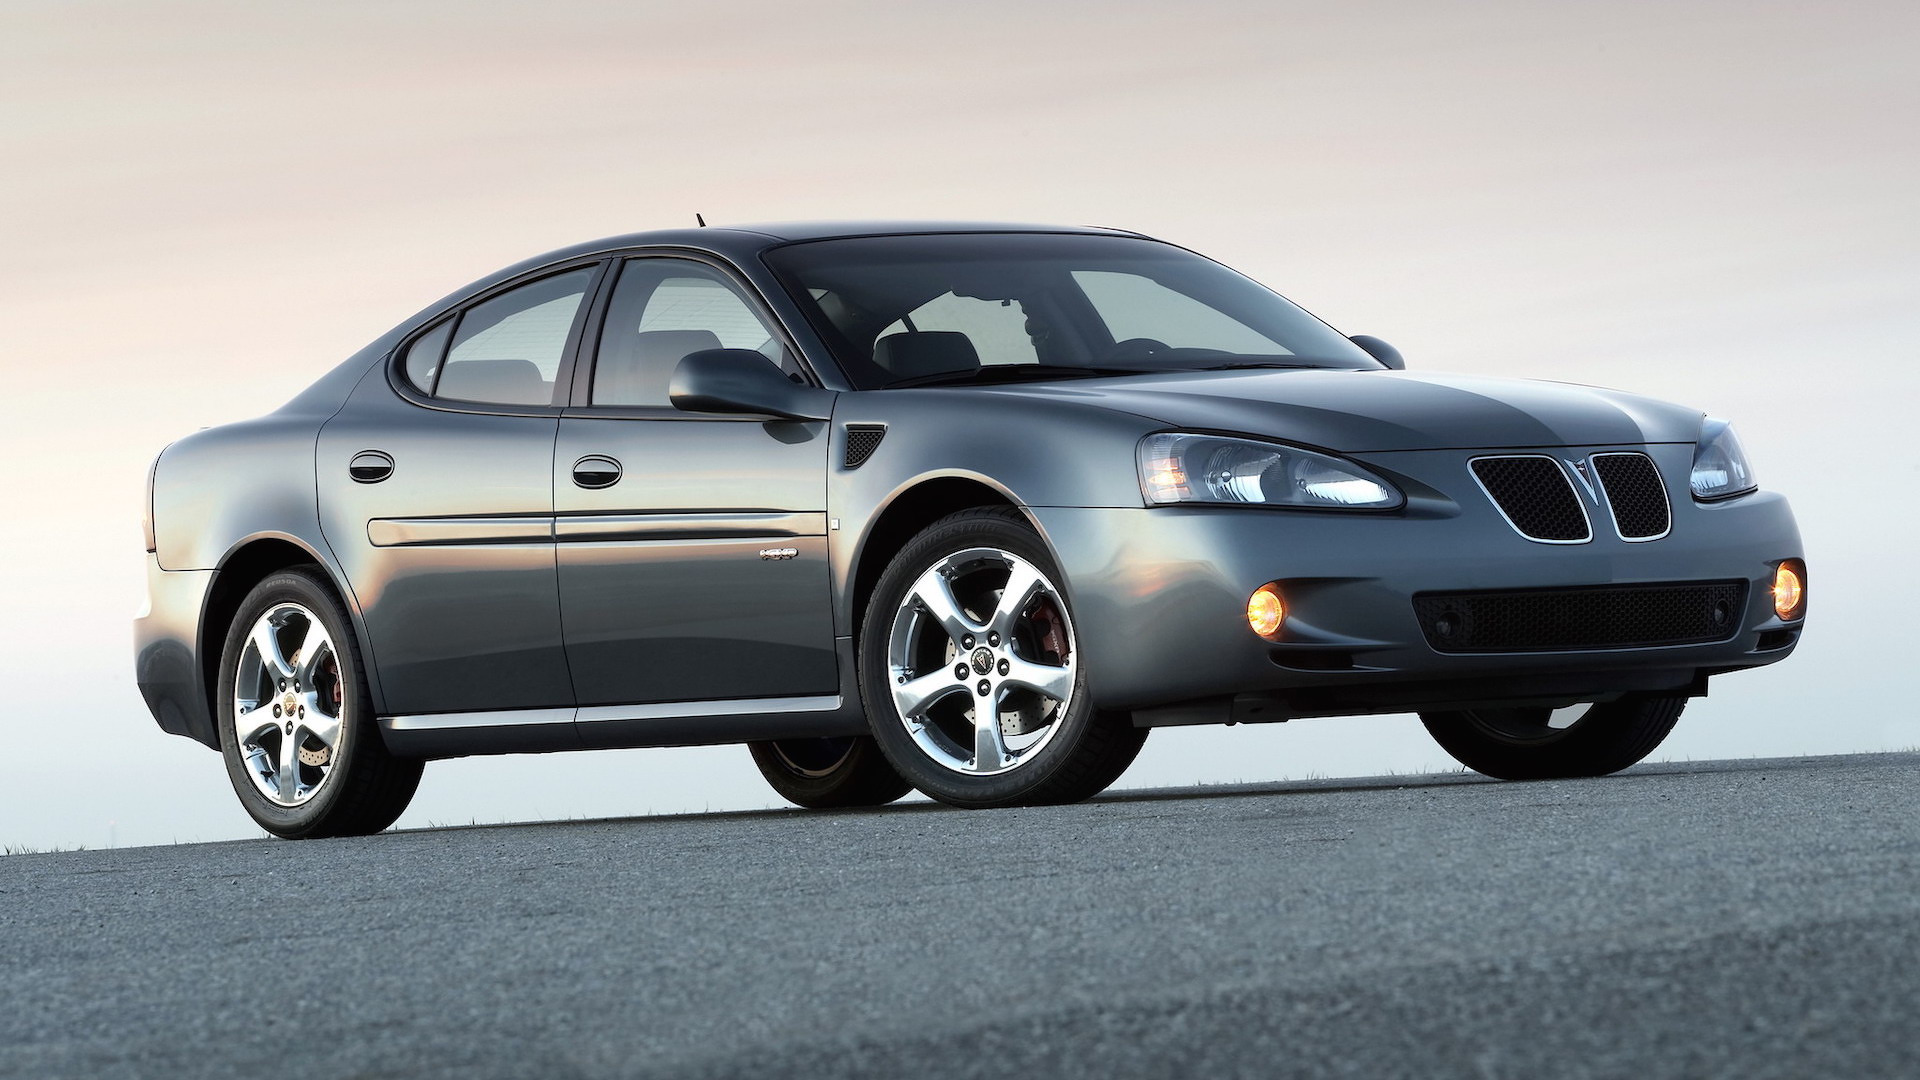 Used Cars for Sale Near Me Under 10000 Awesome 300 Horsepower Cars You Can Snag for Under $10 000